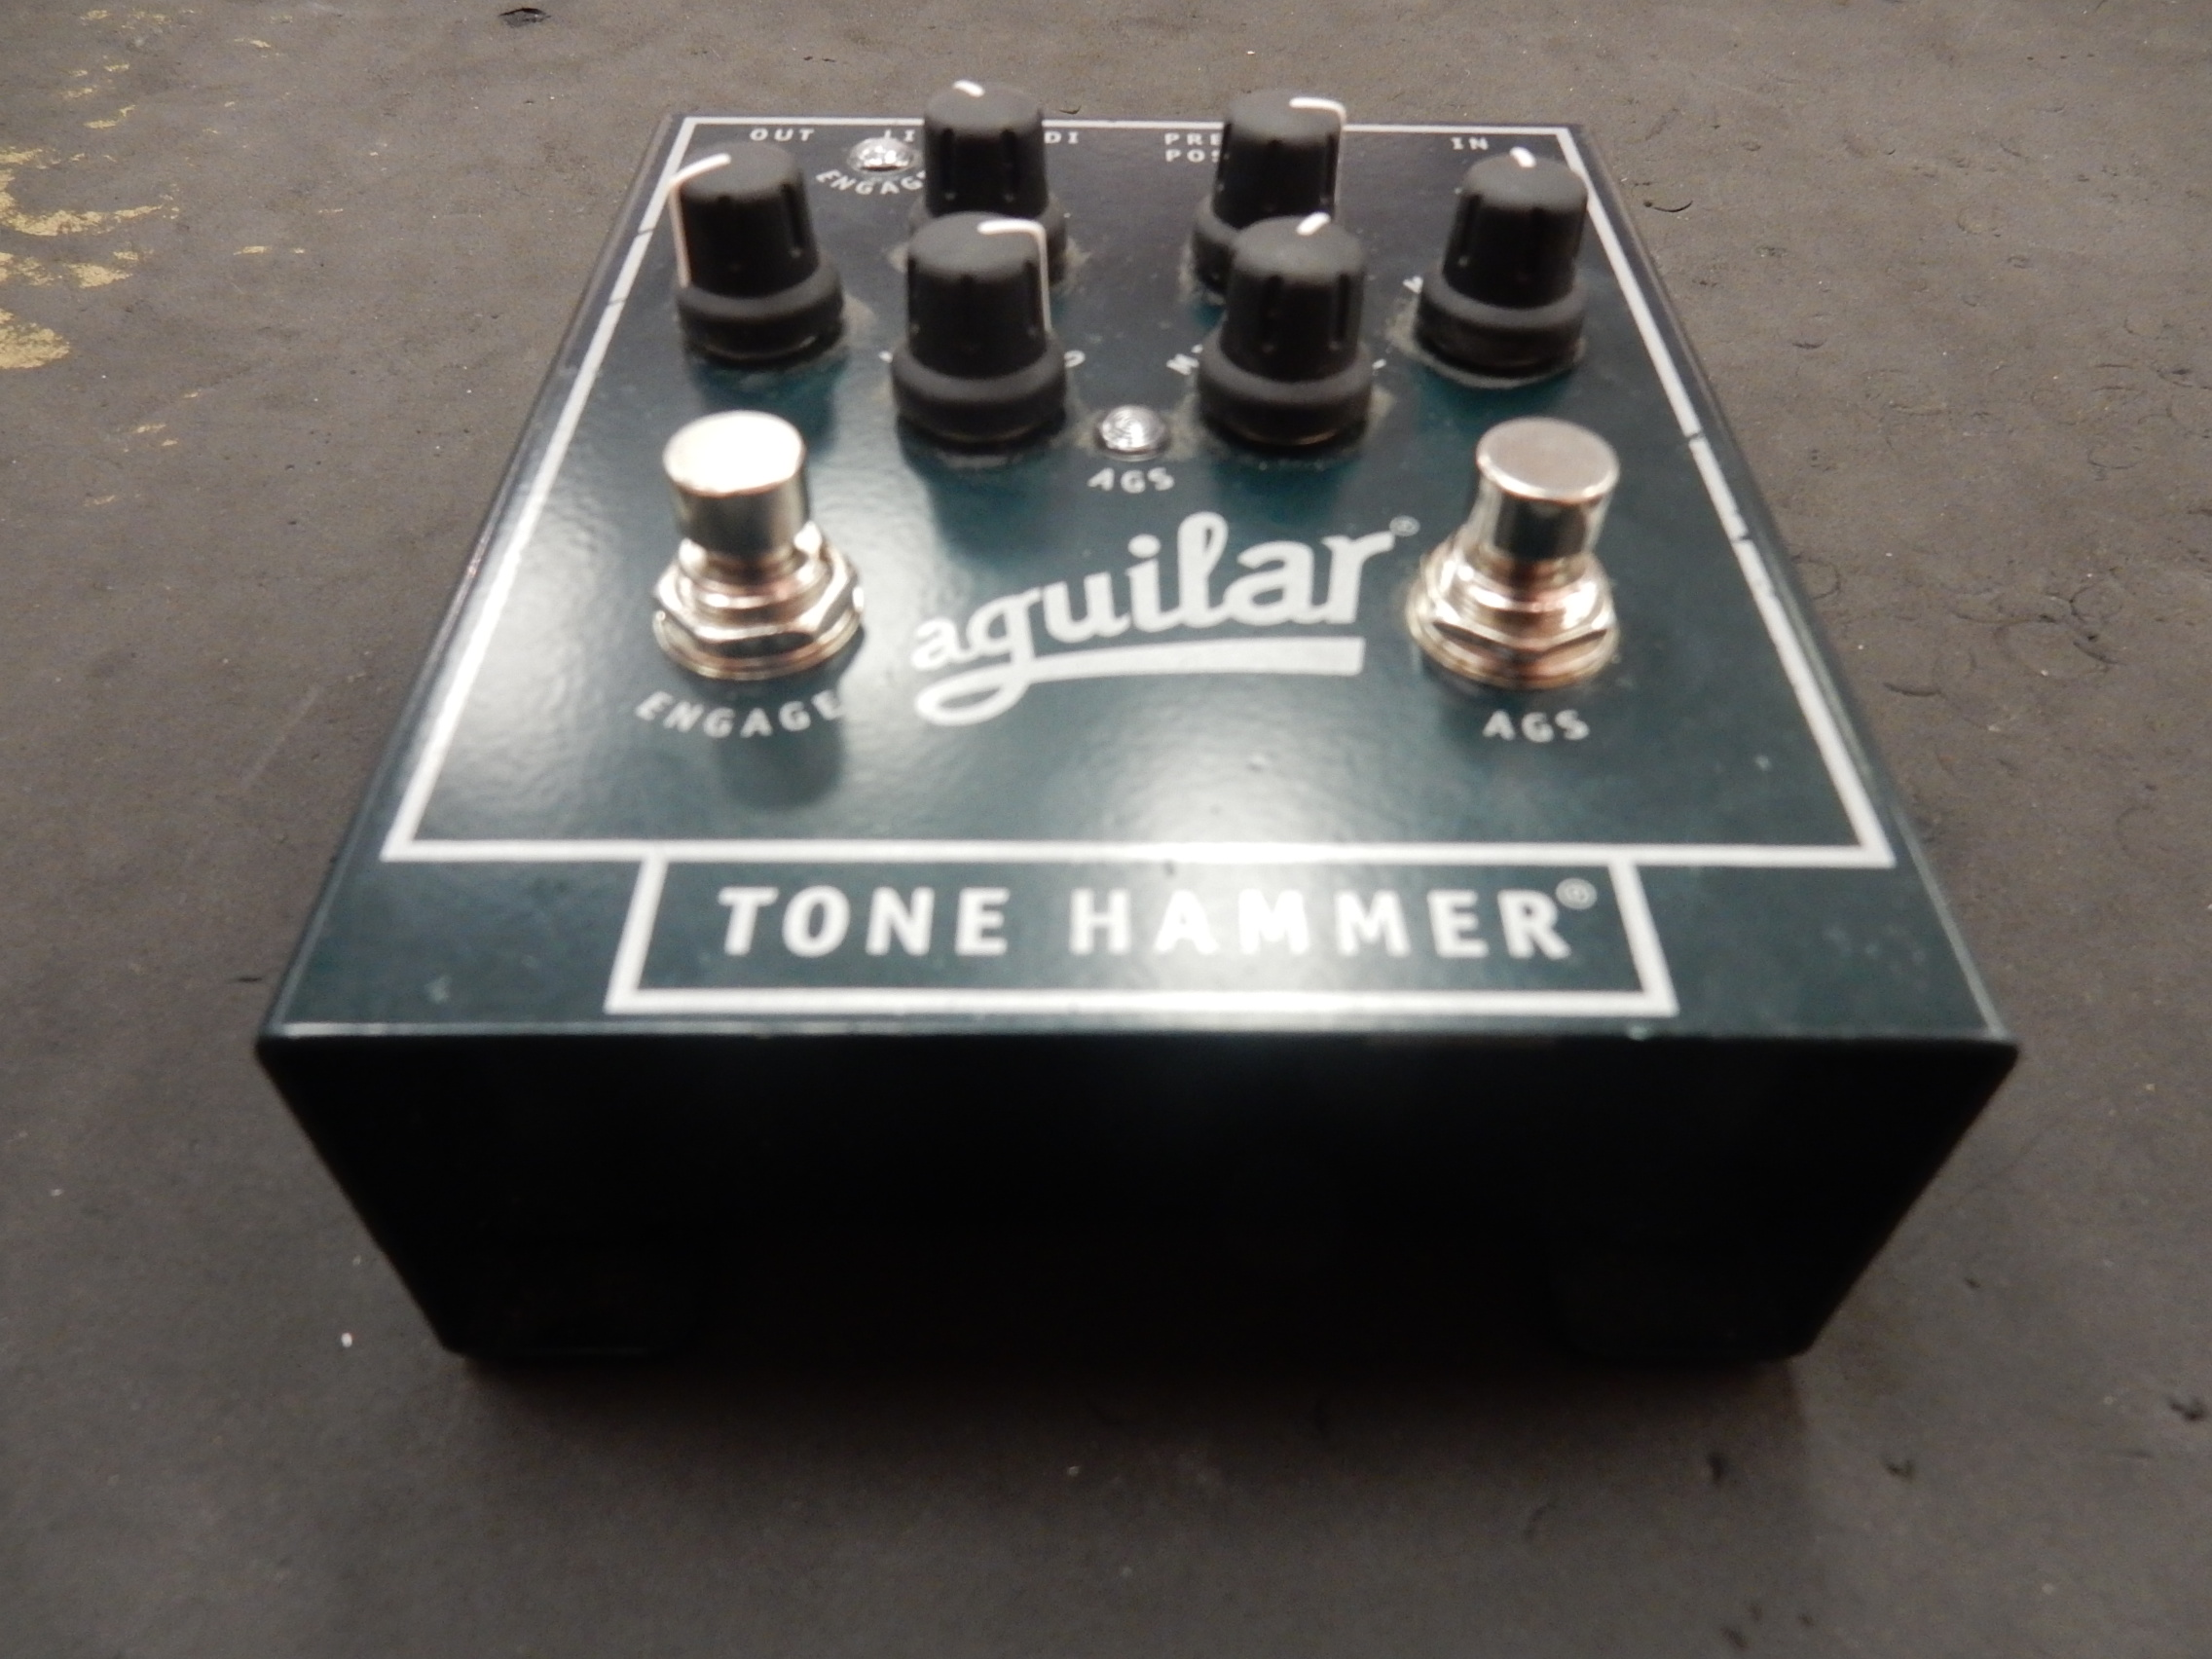 Aguilar - Tone Hammer Preamp/Direct Box